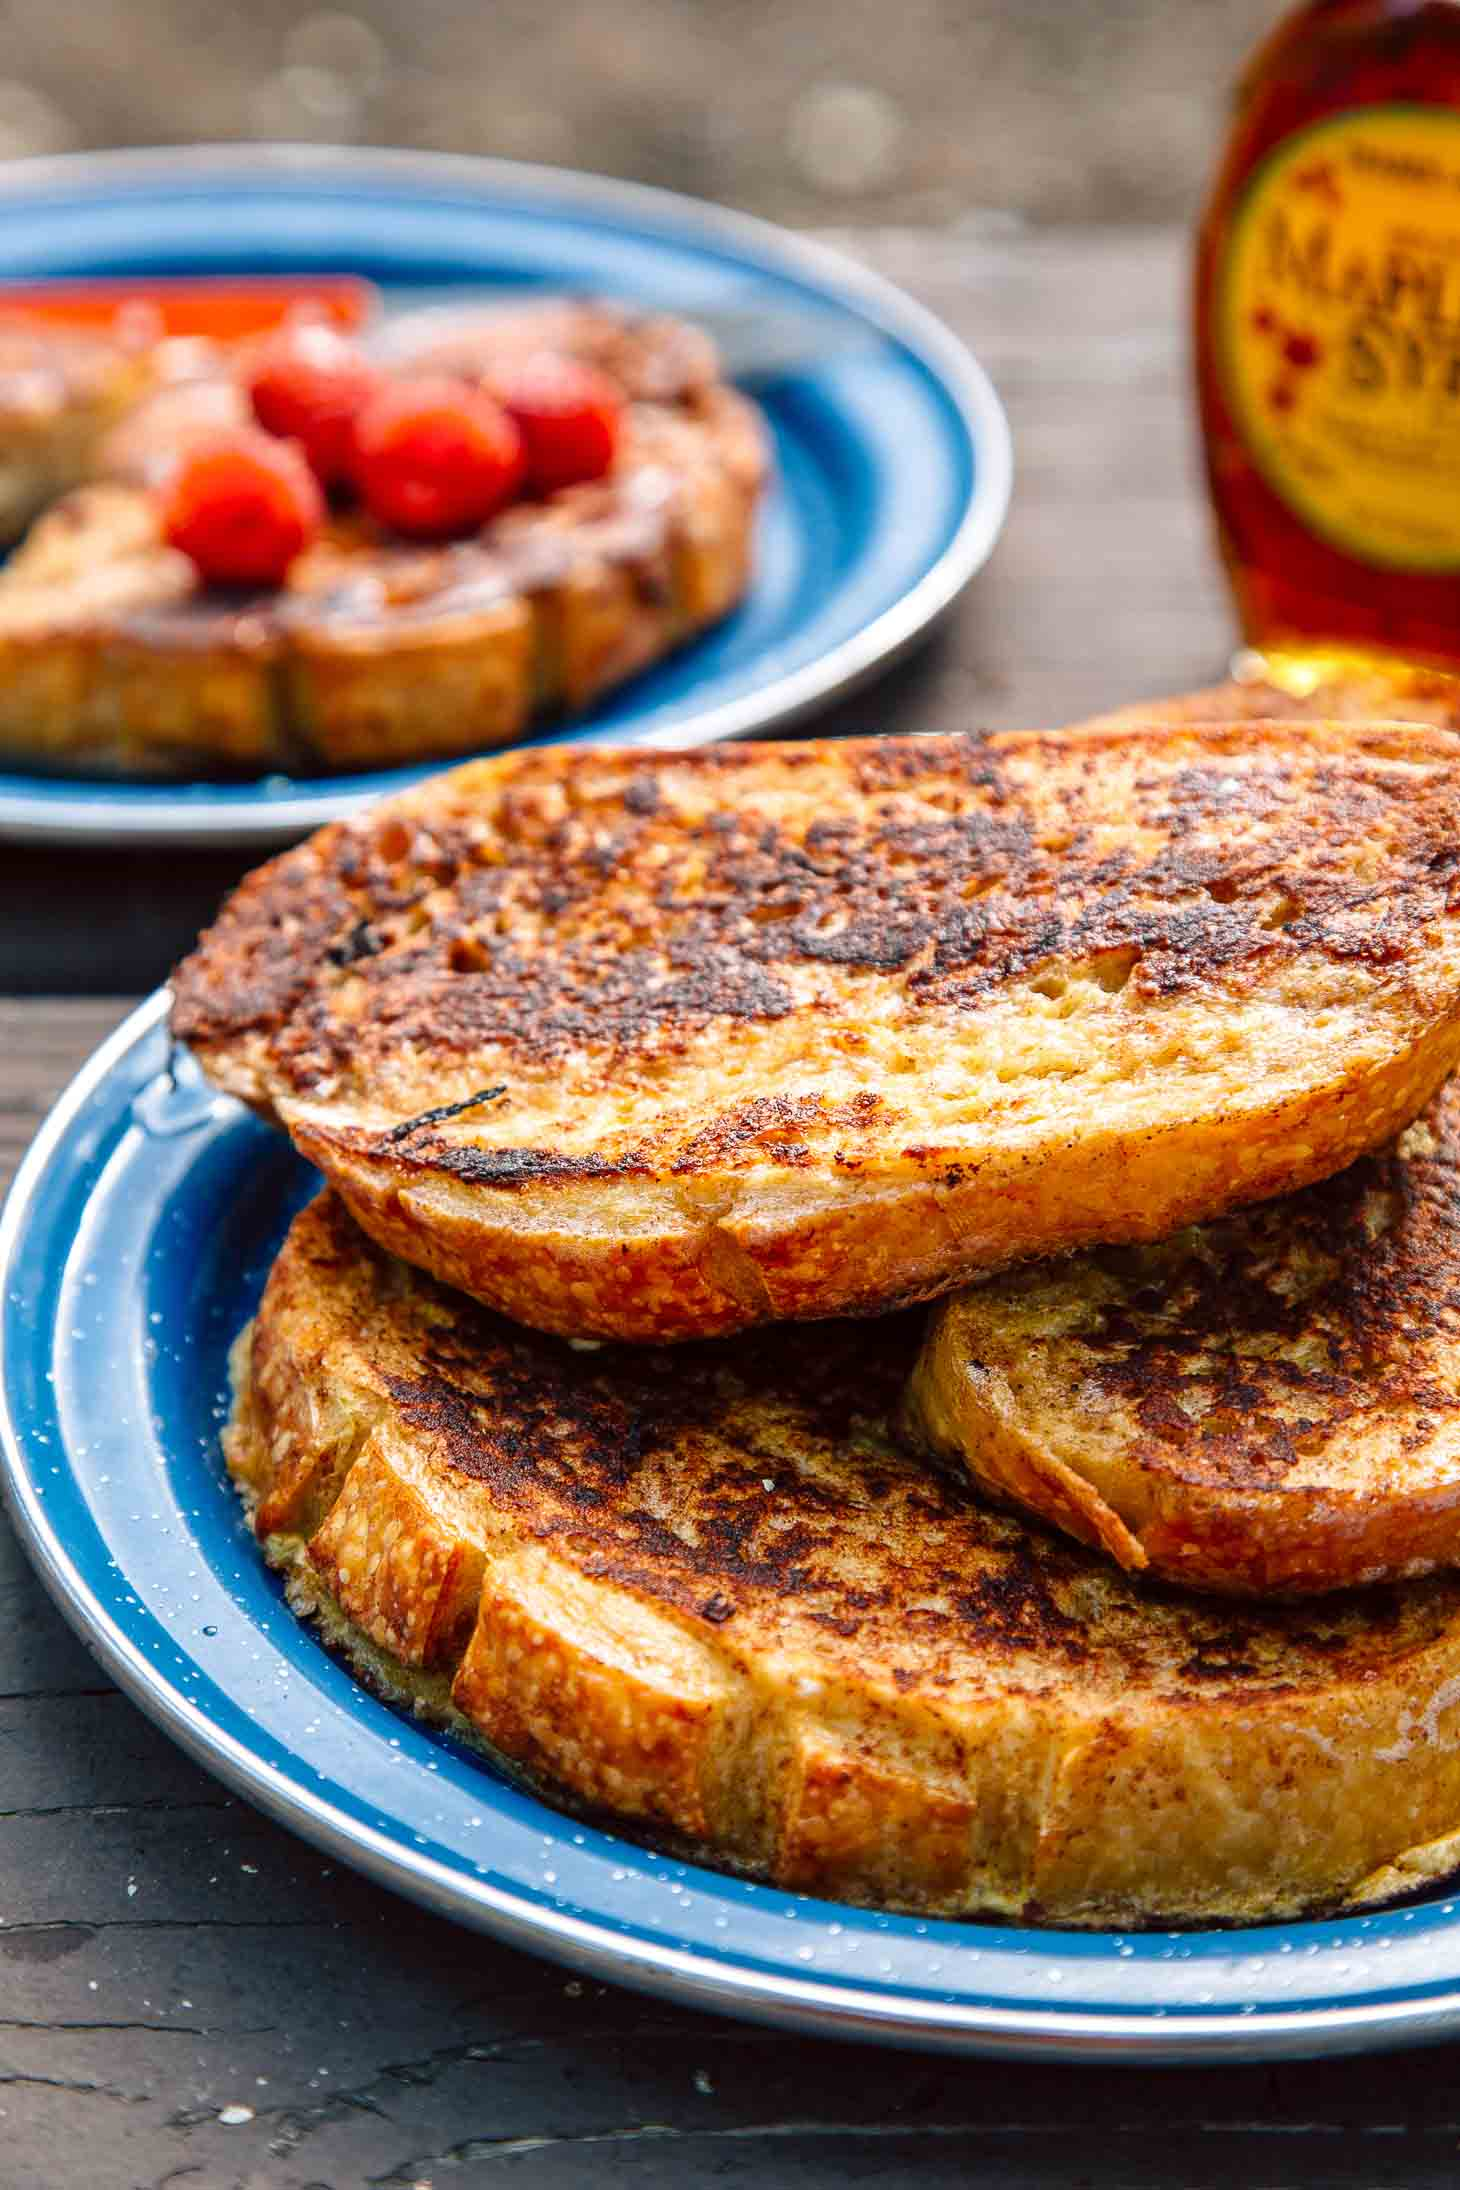 How To Make Perfect French Toast While Camping